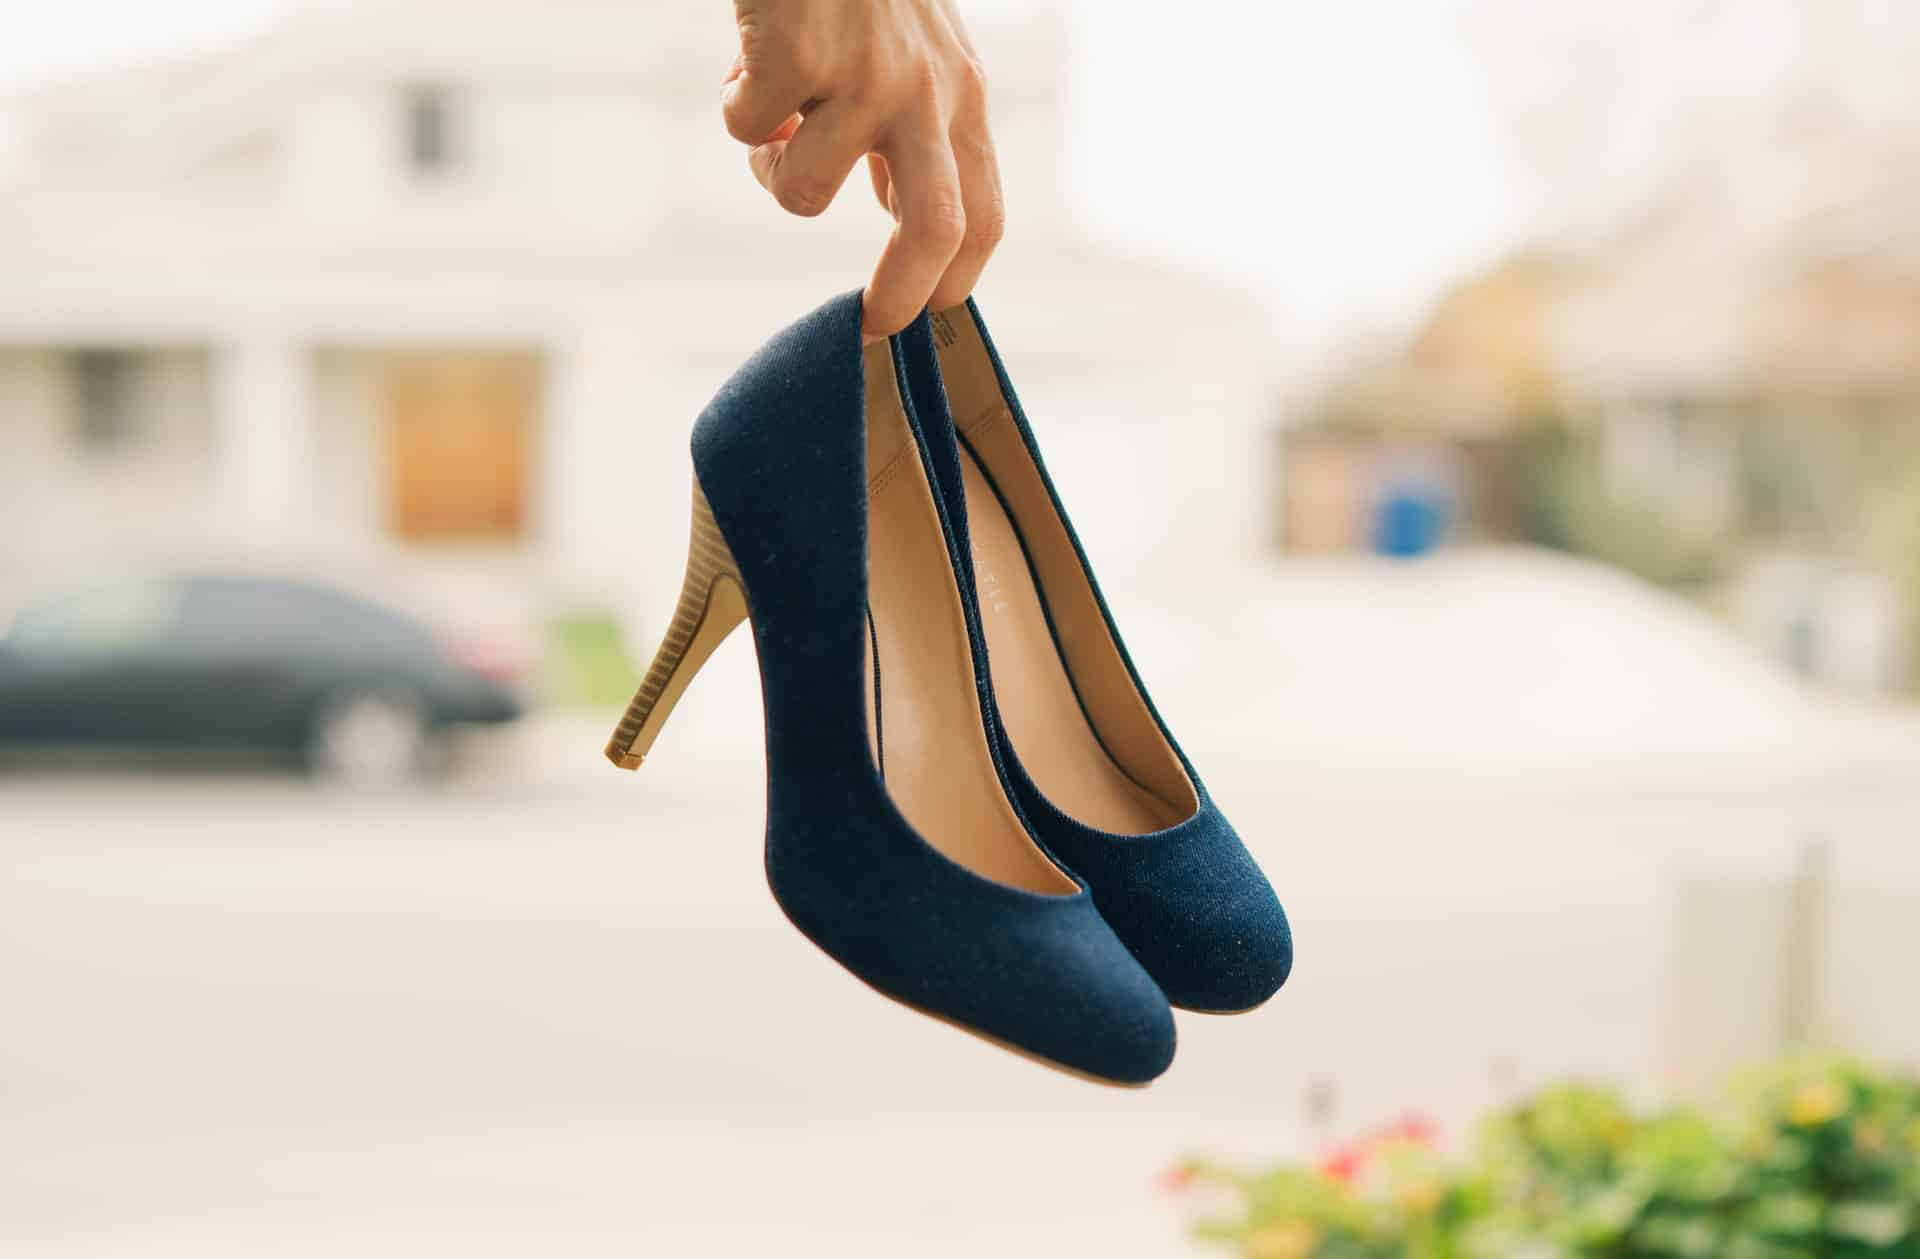 a women hold in her hands a pair of high heels